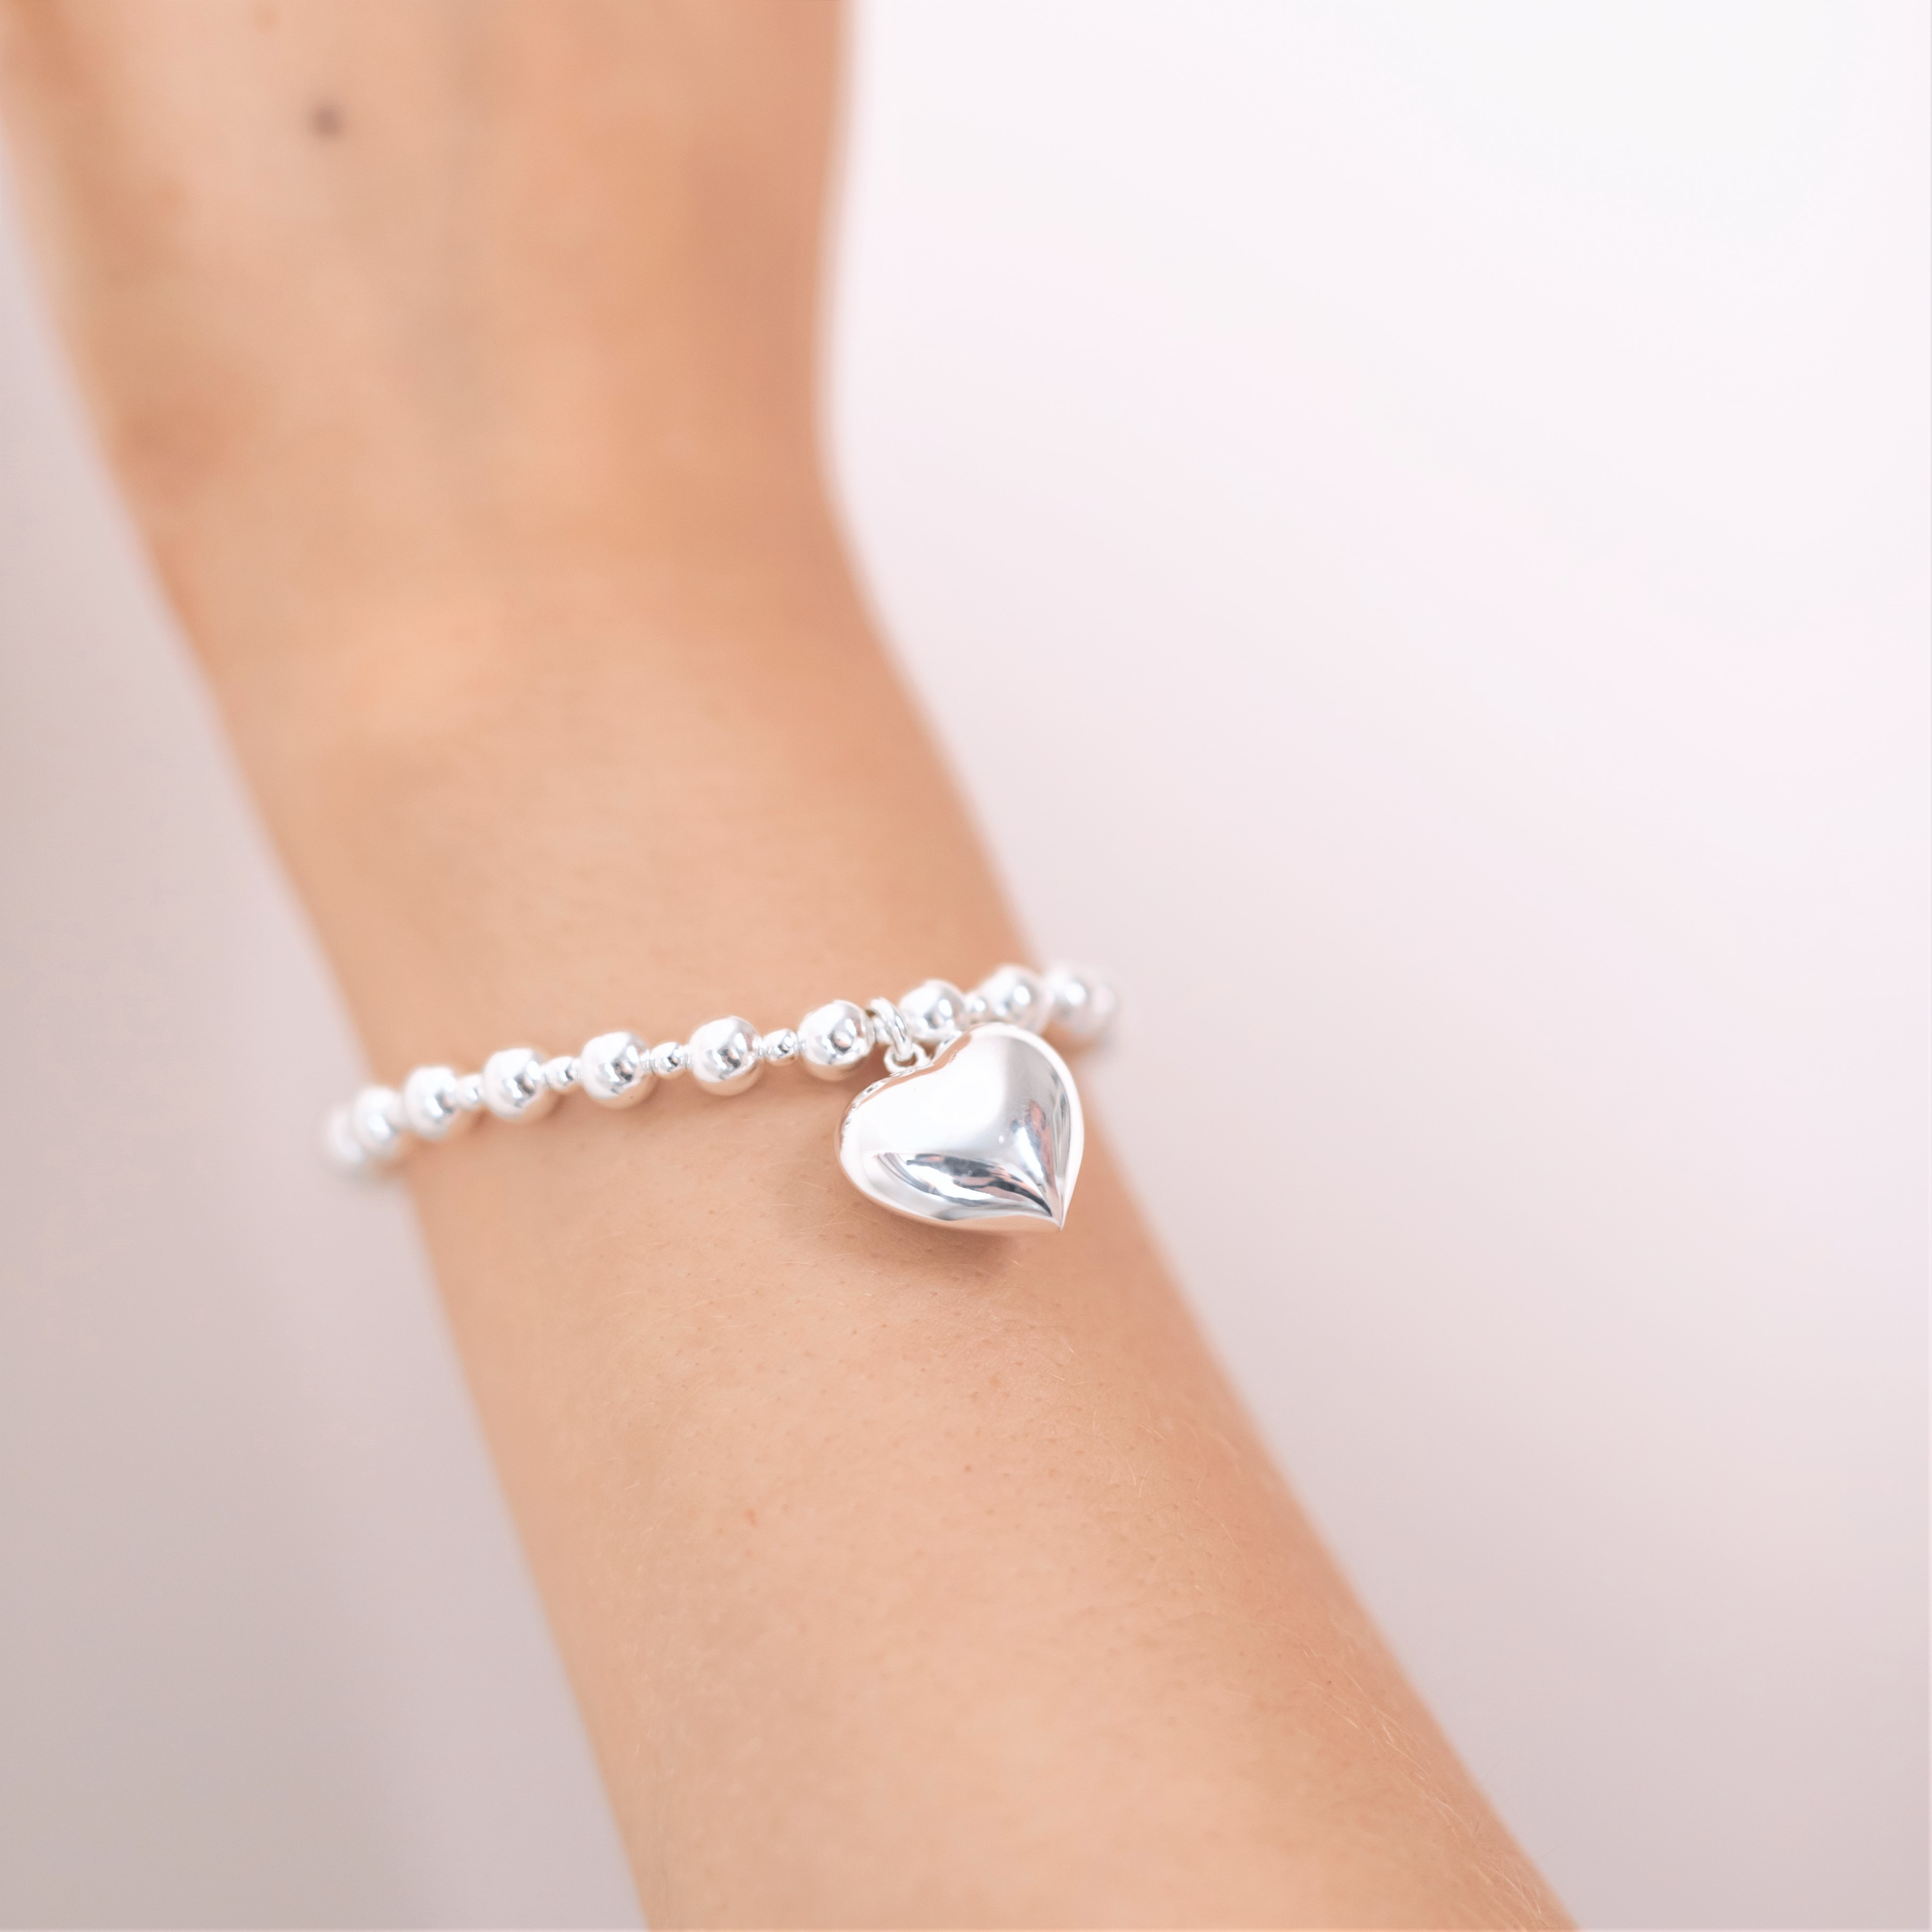 Sterling silver chunky bracelet with chunky heart charm